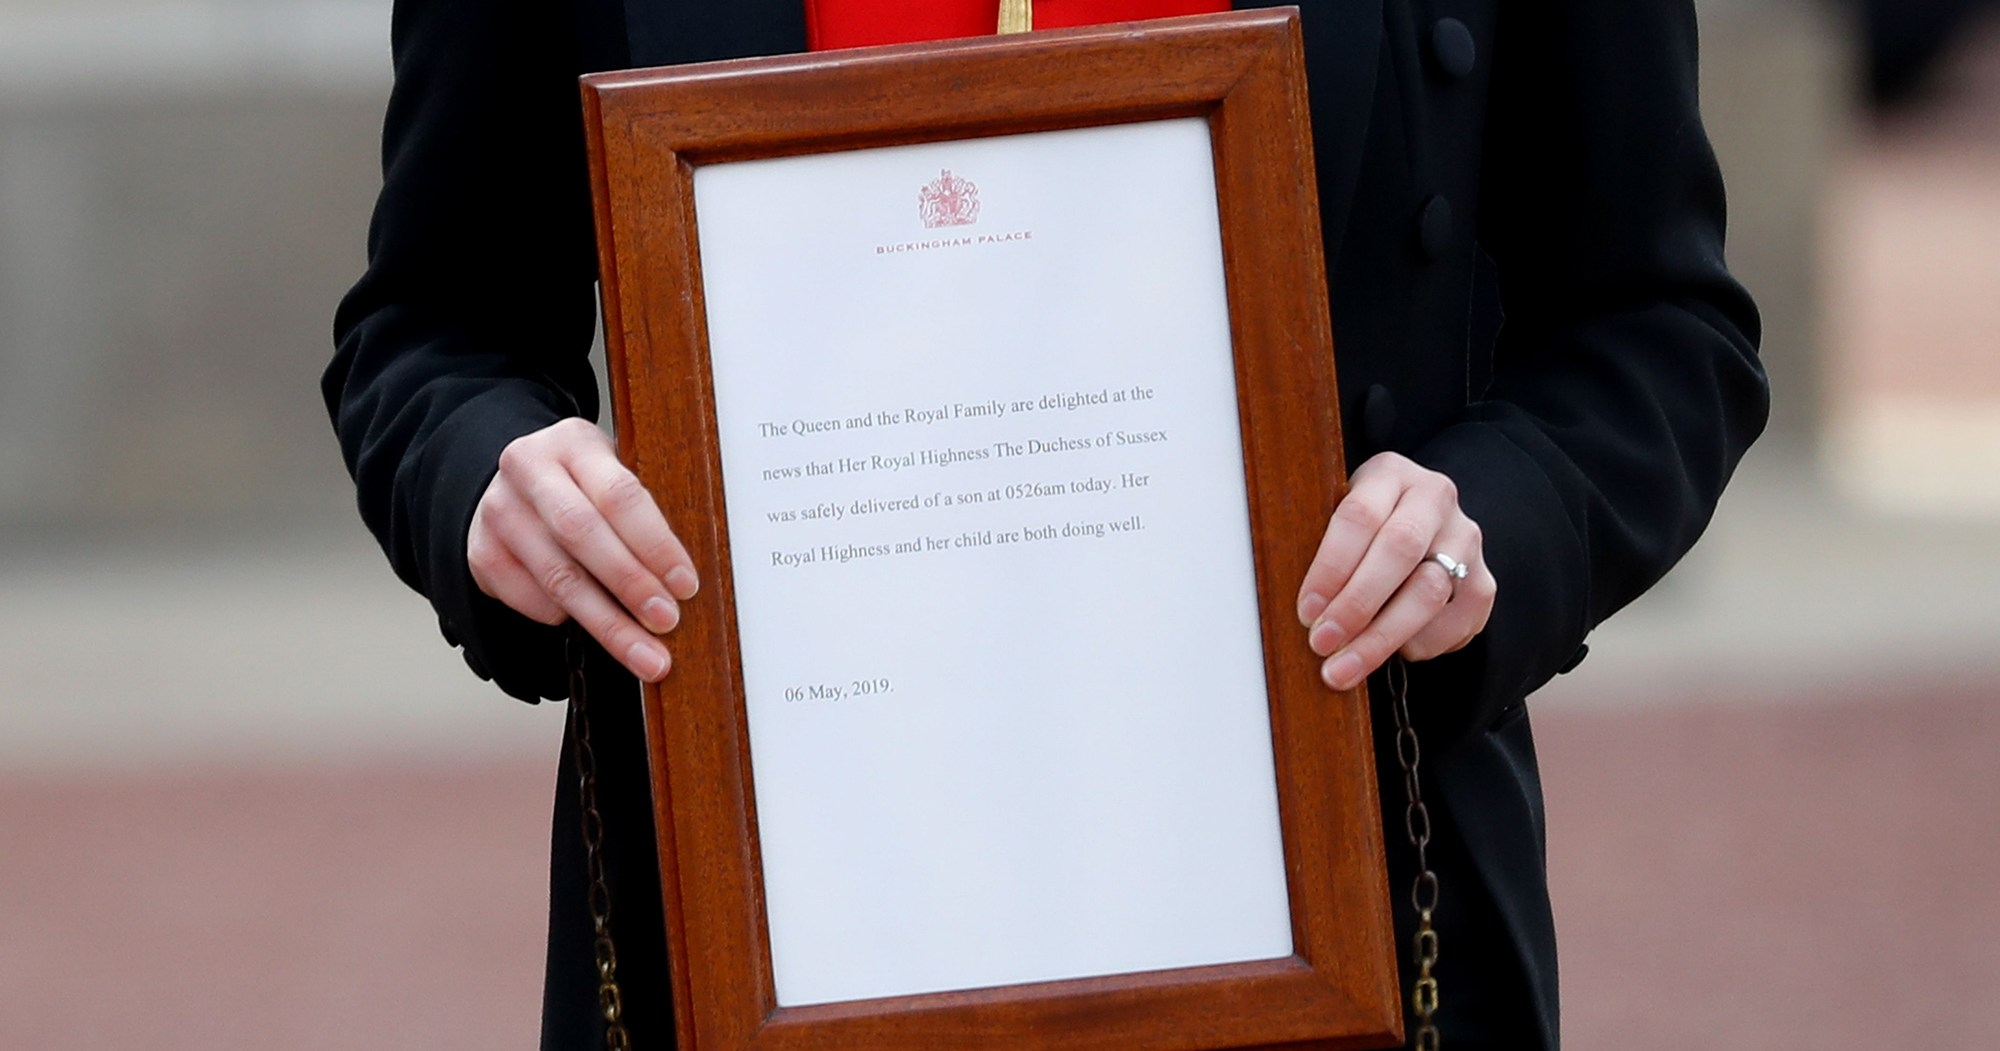 Meghan and Harry's Royal Baby Announced on Buckingham Palace Easel